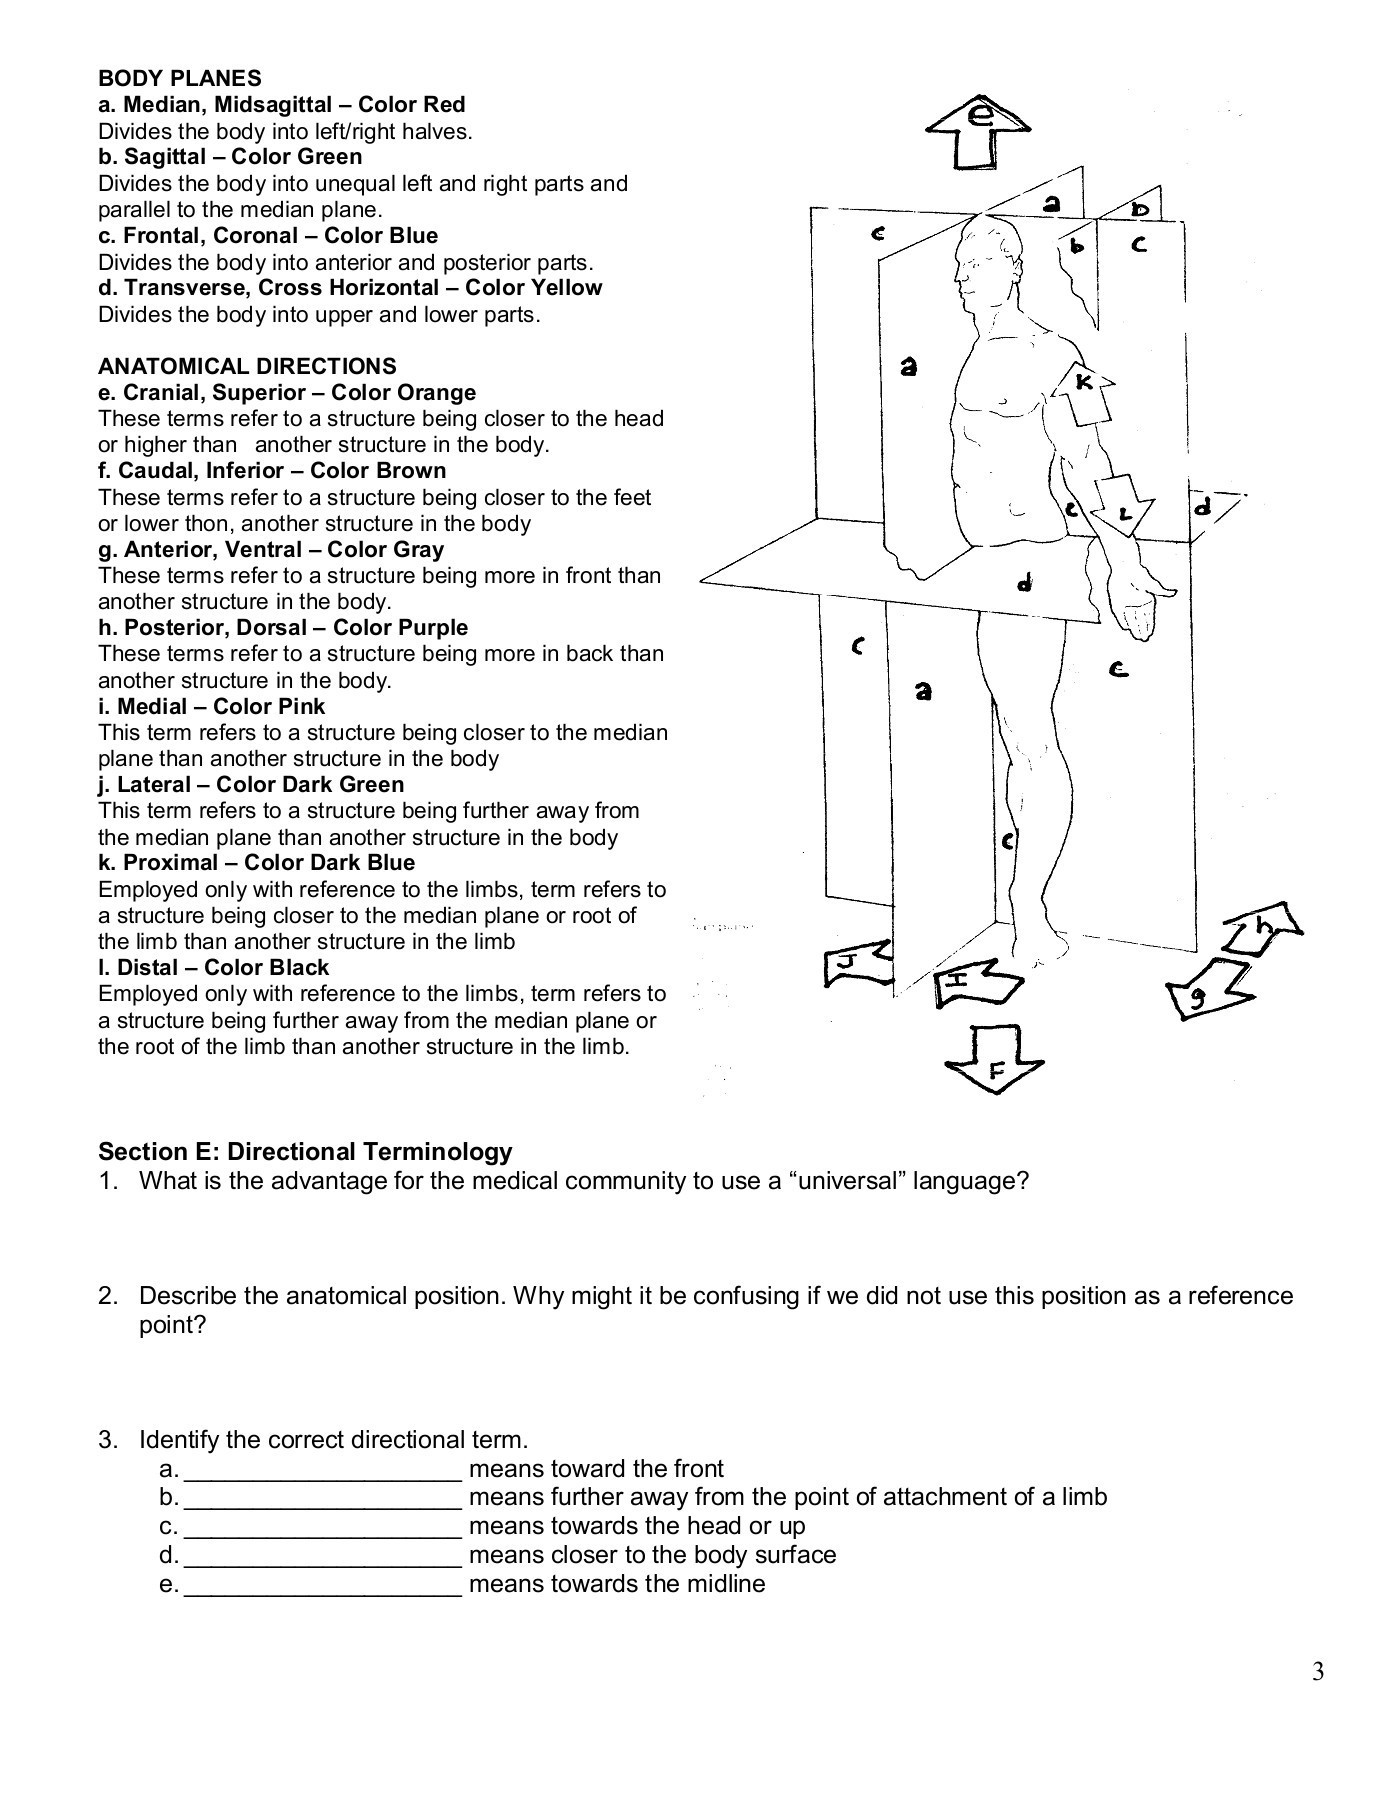 30 Anatomical Terms Worksheet Answers